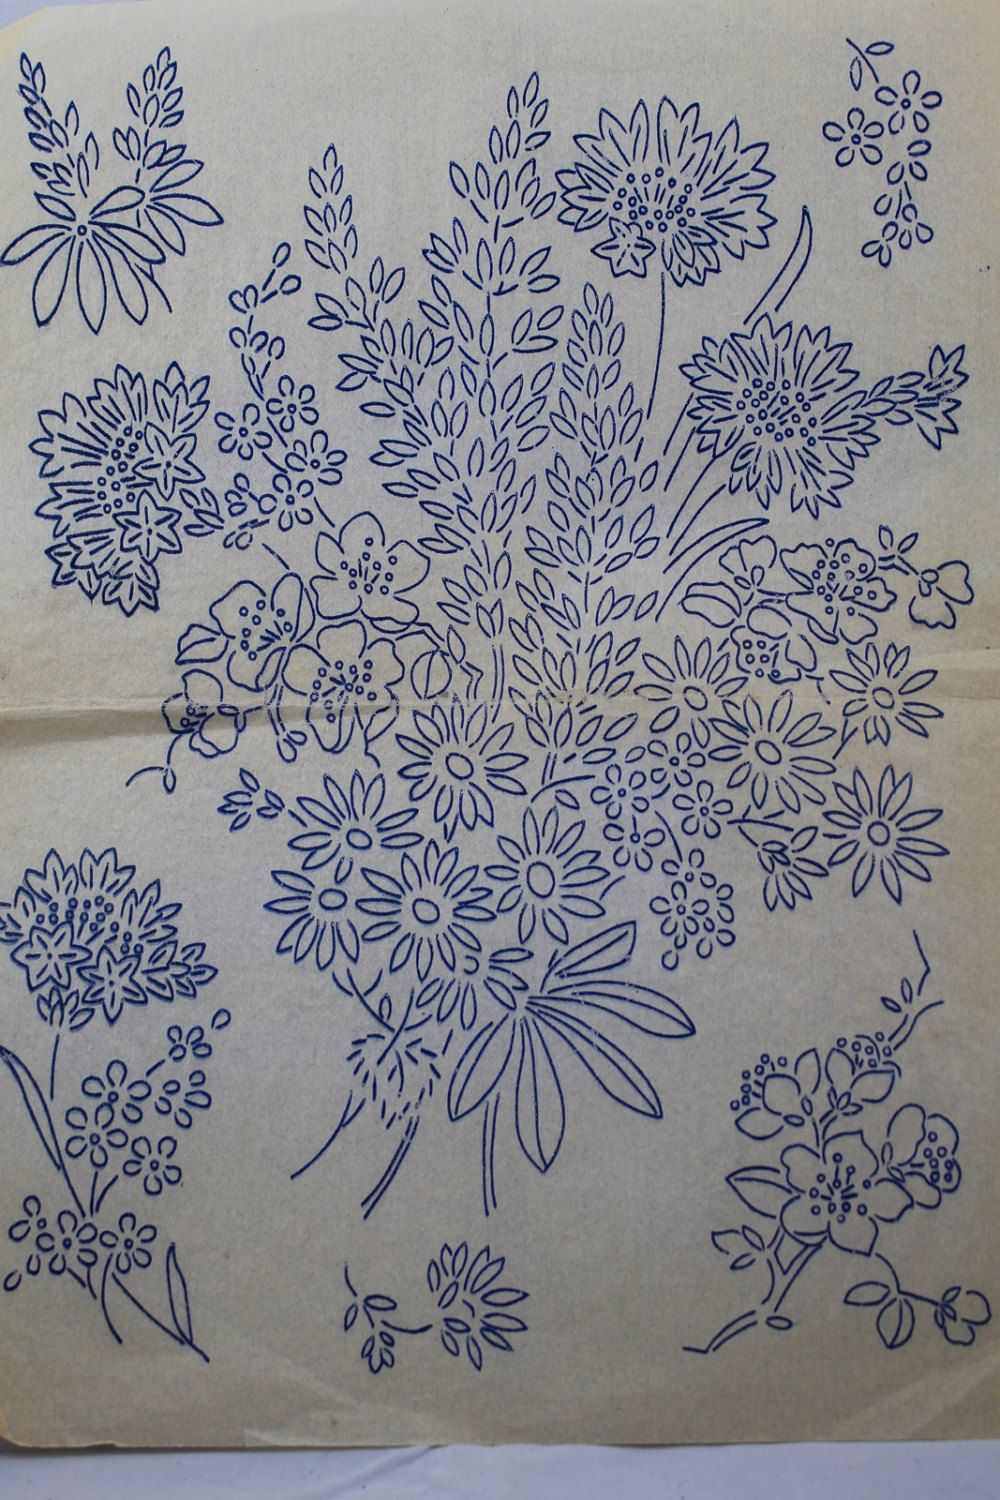 Vintage ironon embroidery transfer of a bouquet of flowers by